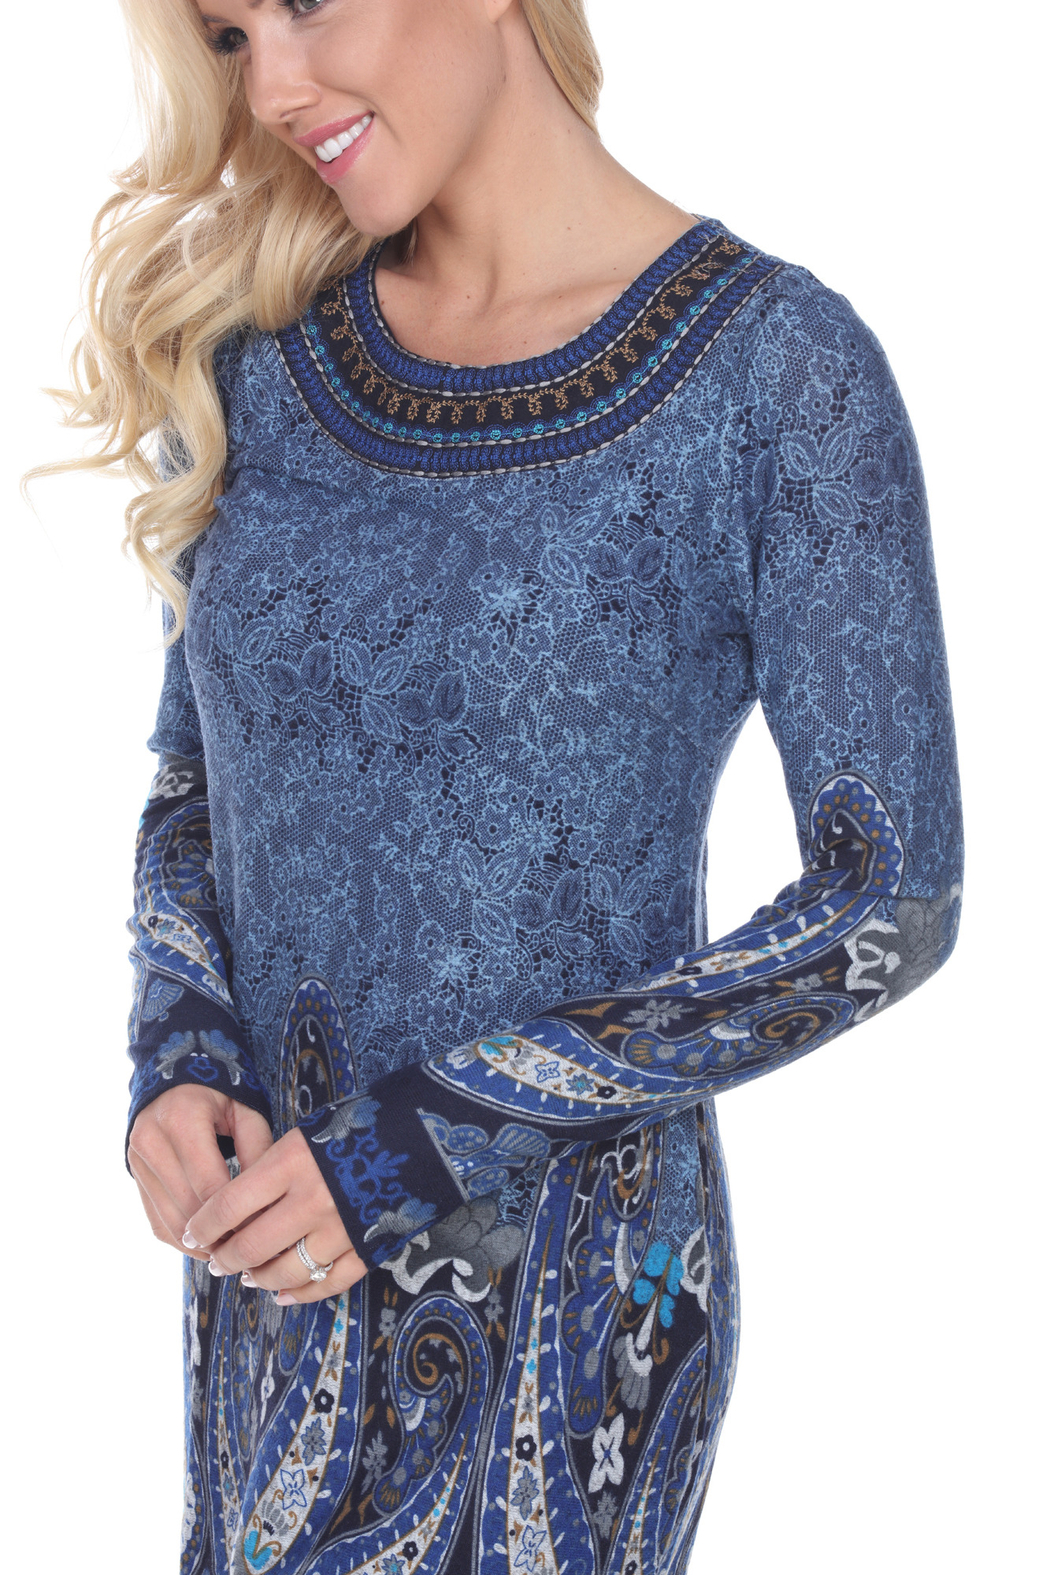 WhiteMark White Mark's Paisley Print Embroidered Sweater Dress - Back Cropped Image